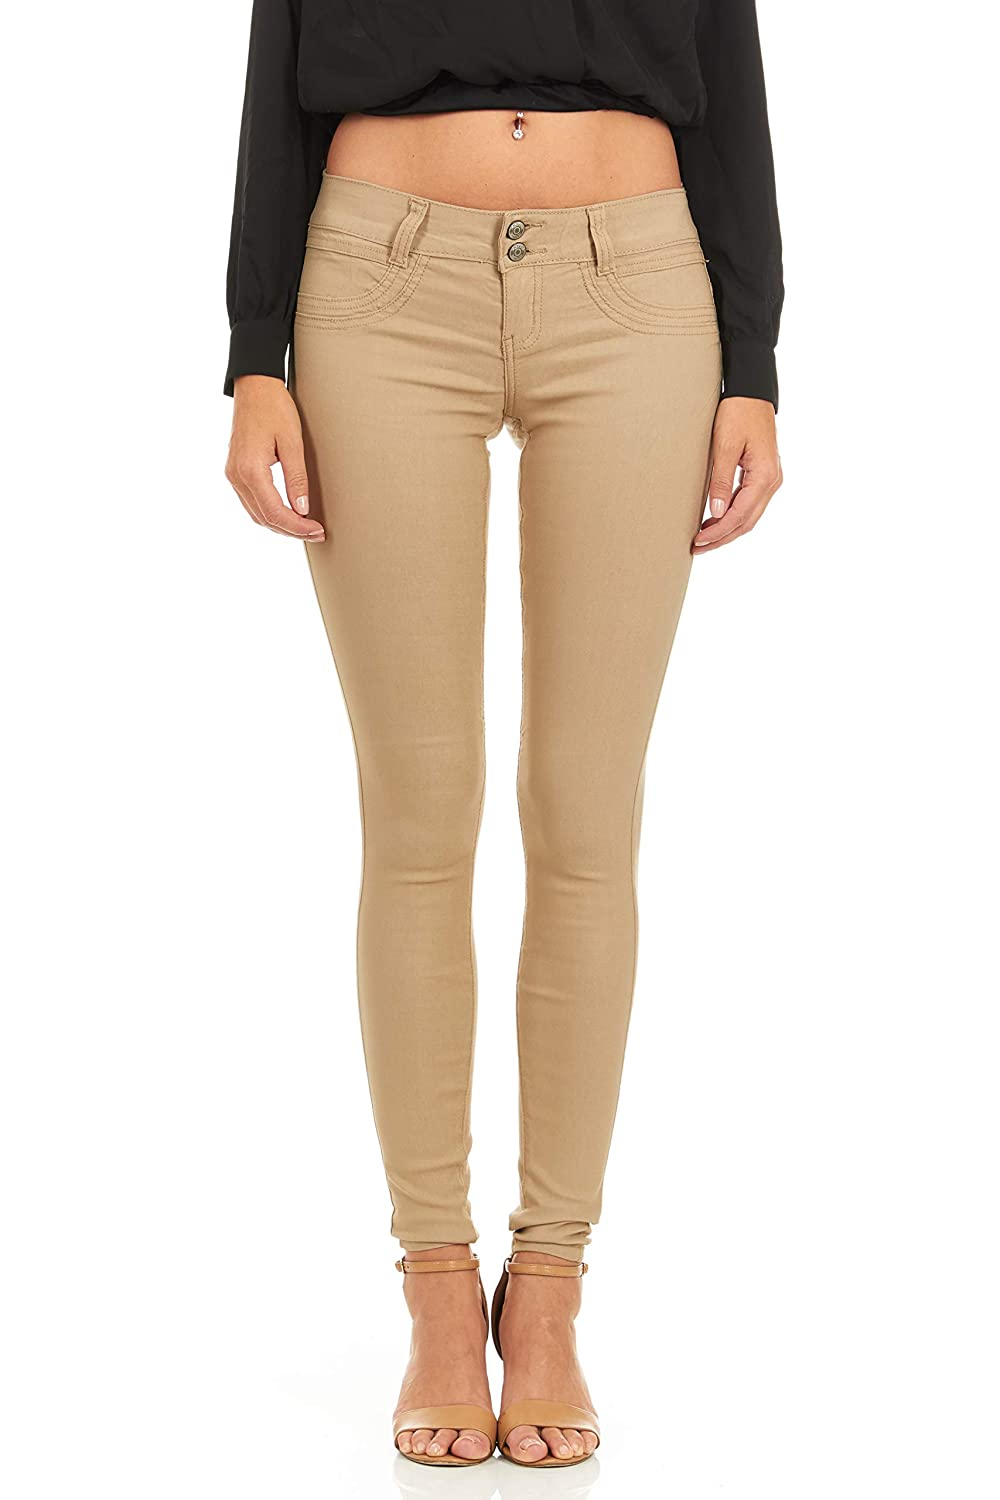 ab23cf00e0 ✓️Skinny Jeans on Sale: Save 20% each on on ANY 3 or more items offered by  YDX Apparel use coupon code VEFM8ZJY ALSO purchase ANY 2 pairs to get FREE  ...